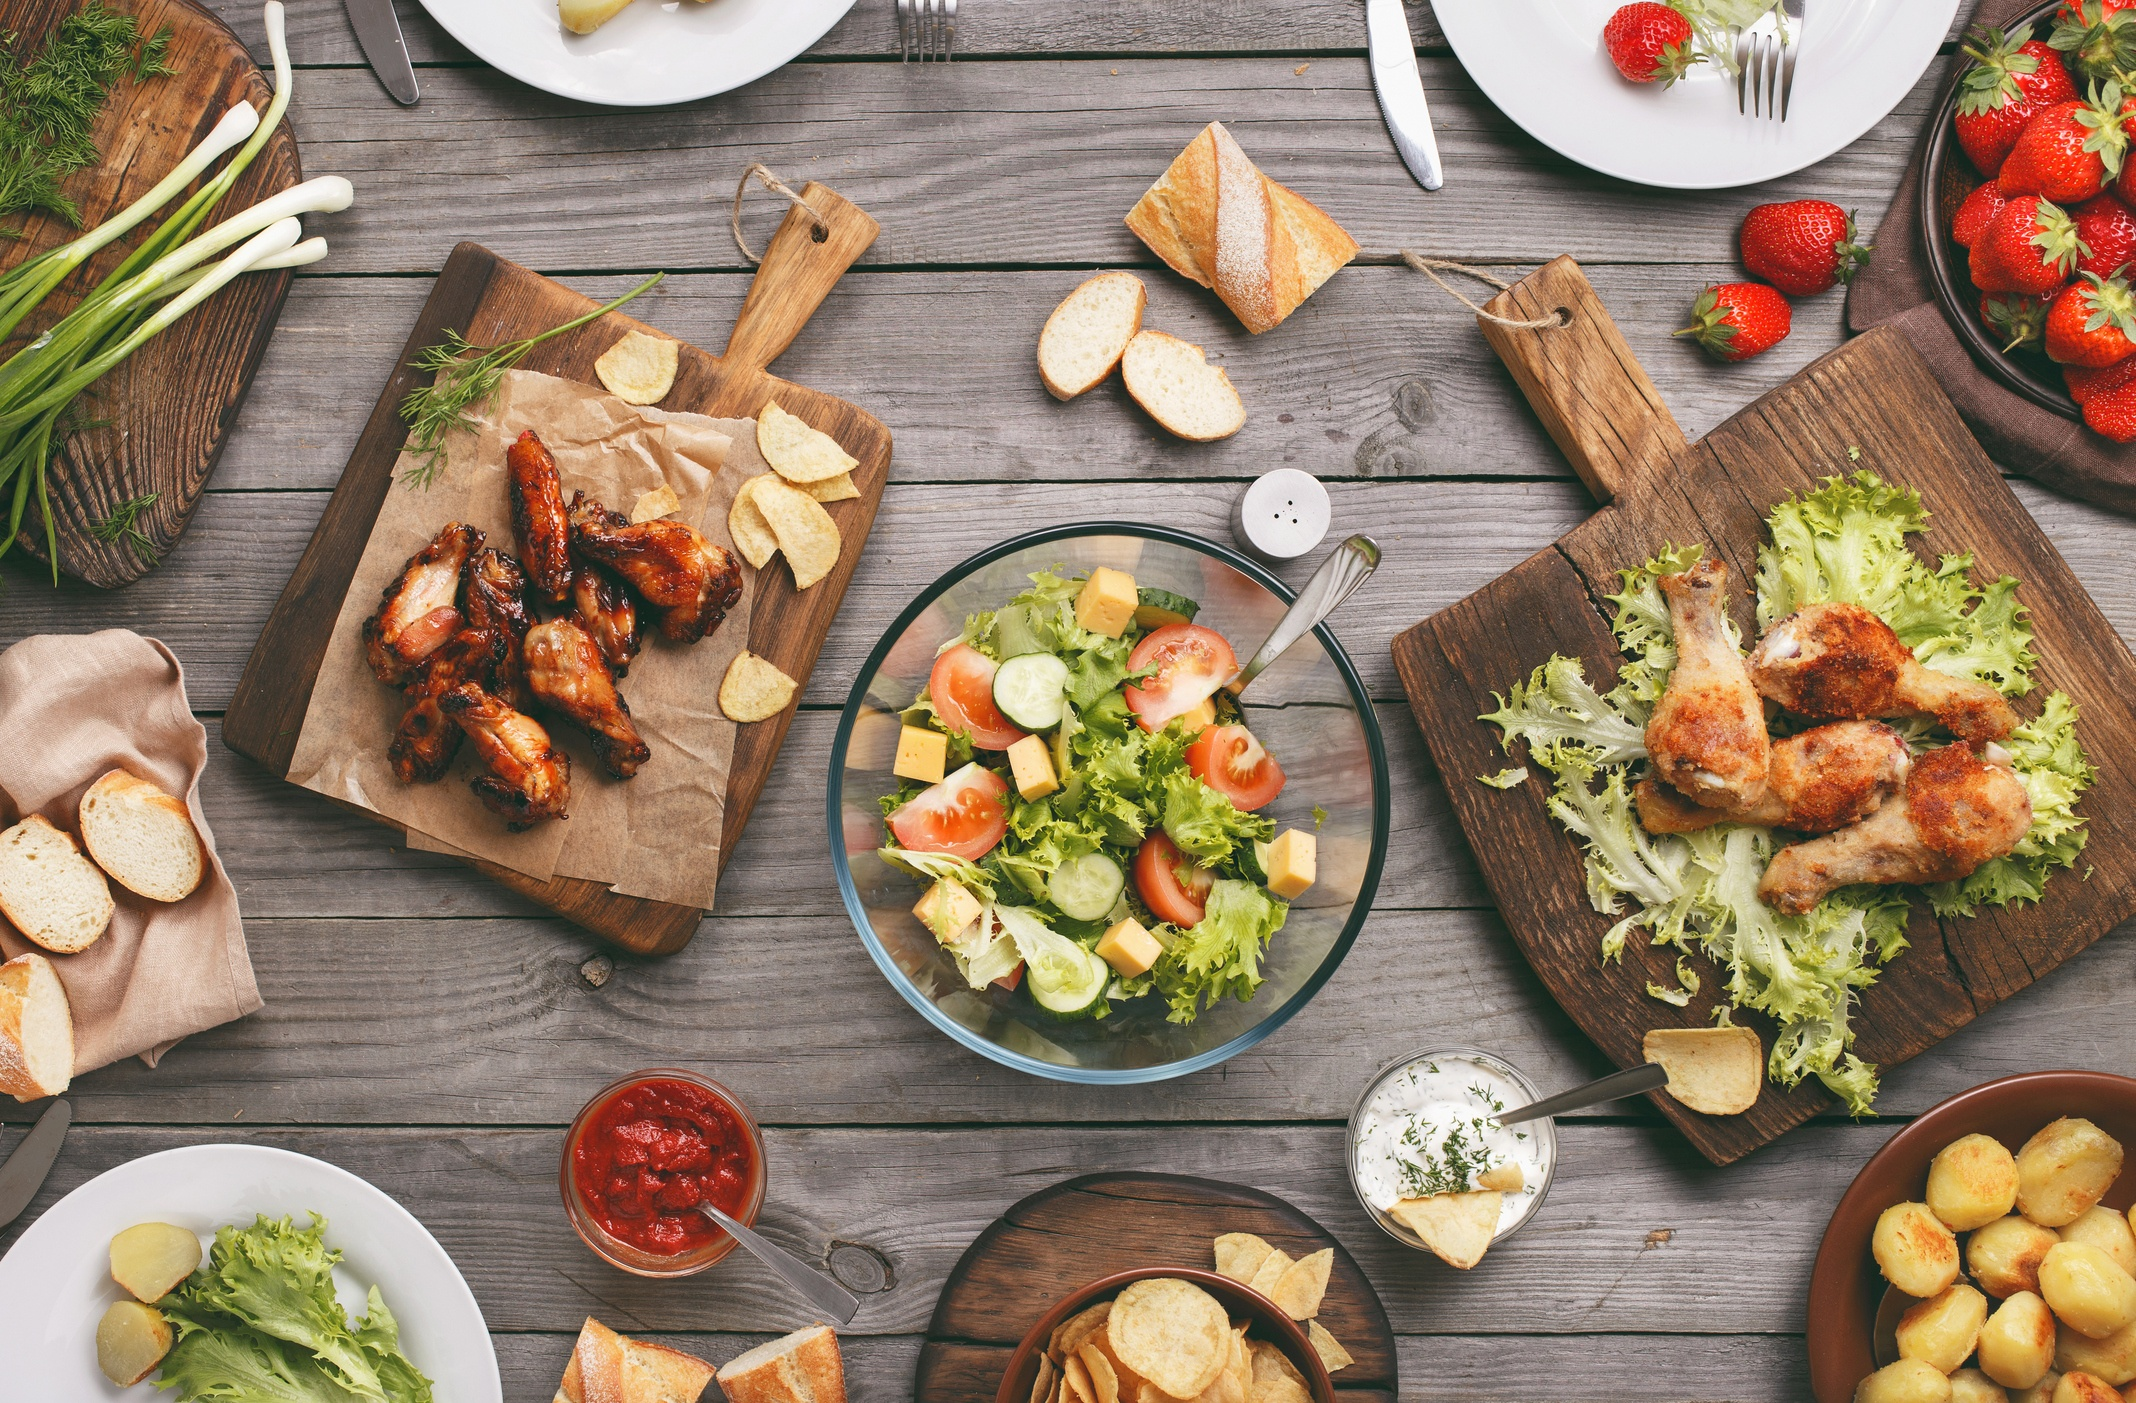 Chicken, salad, fruit, dips and bread on a table outside.